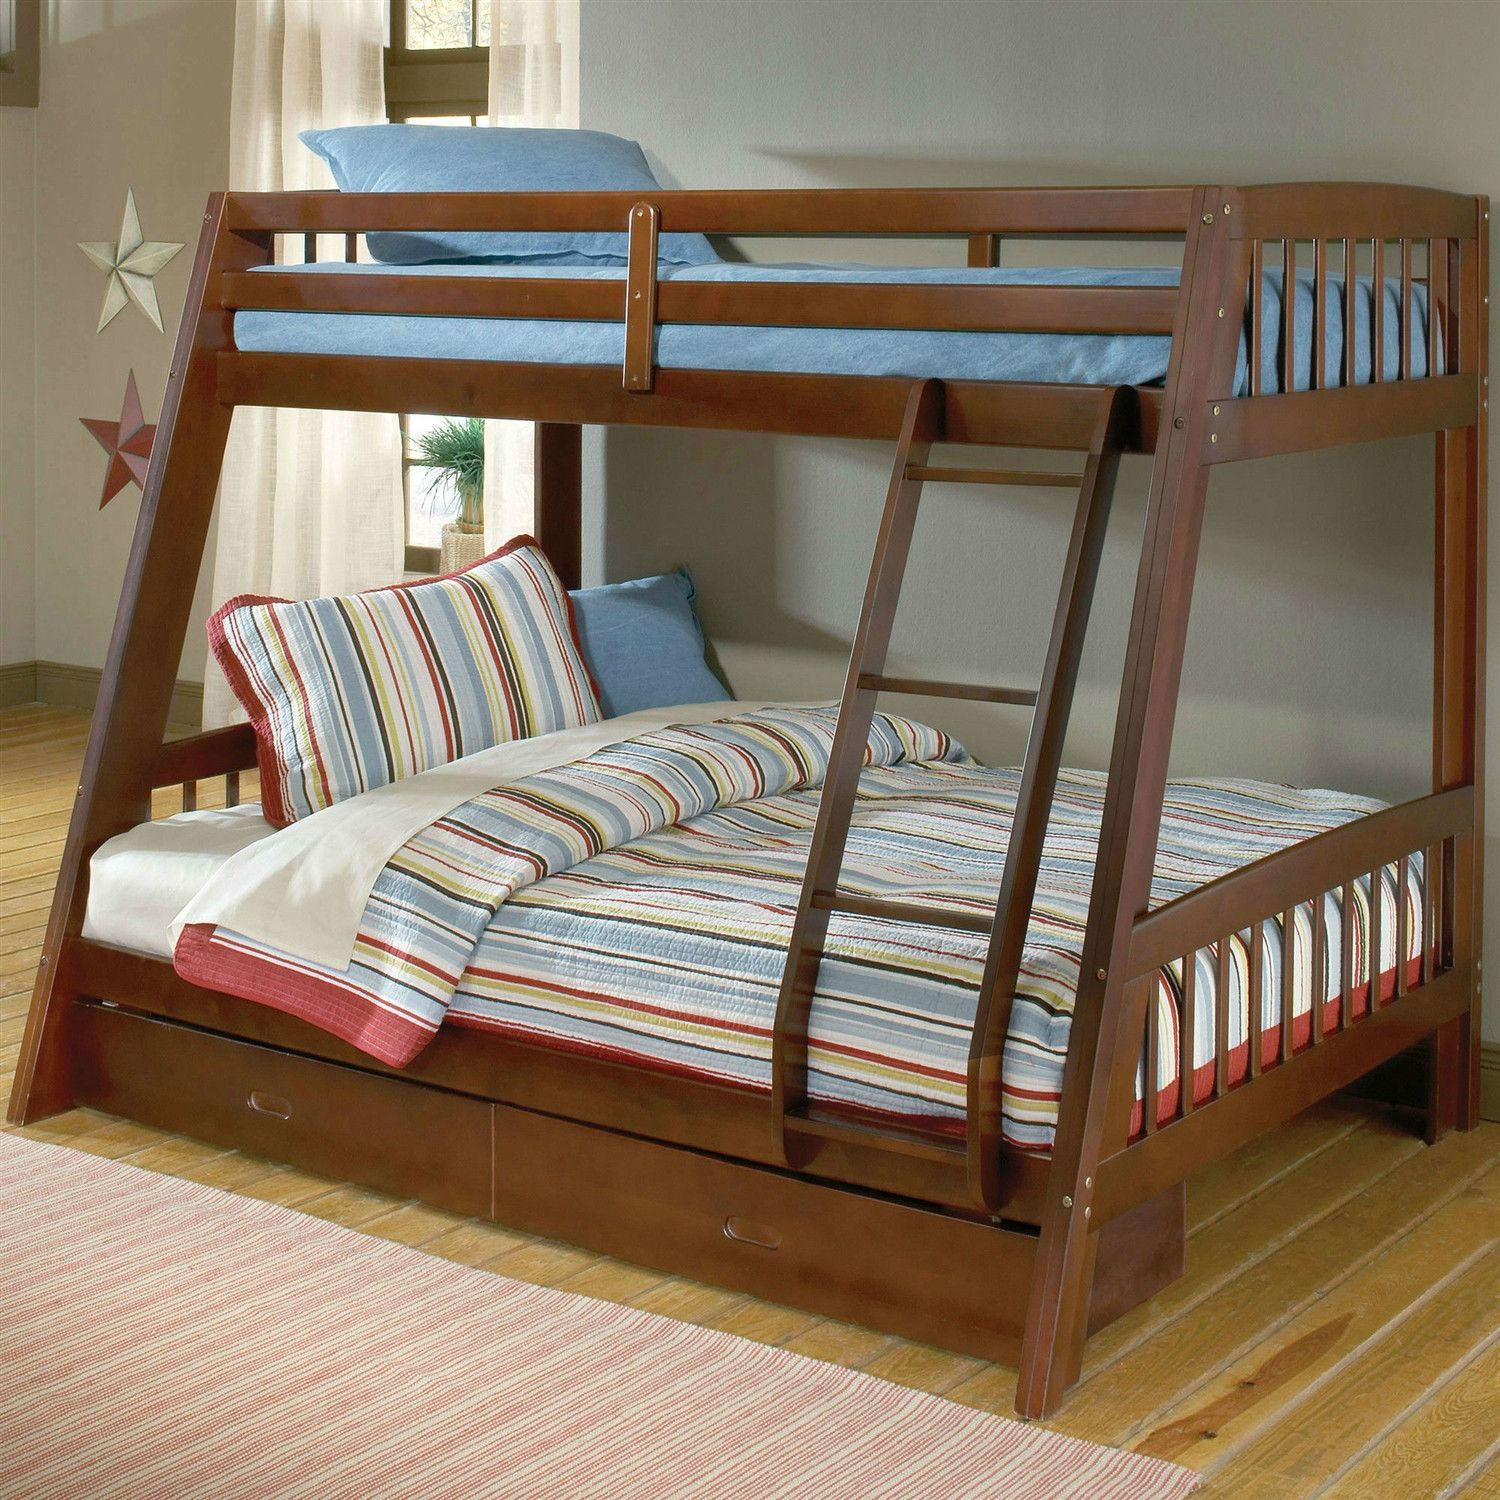 Loft bed ideas boys  Modern Twin over Full Bunk Bed with Ladder and Storage Drawers in